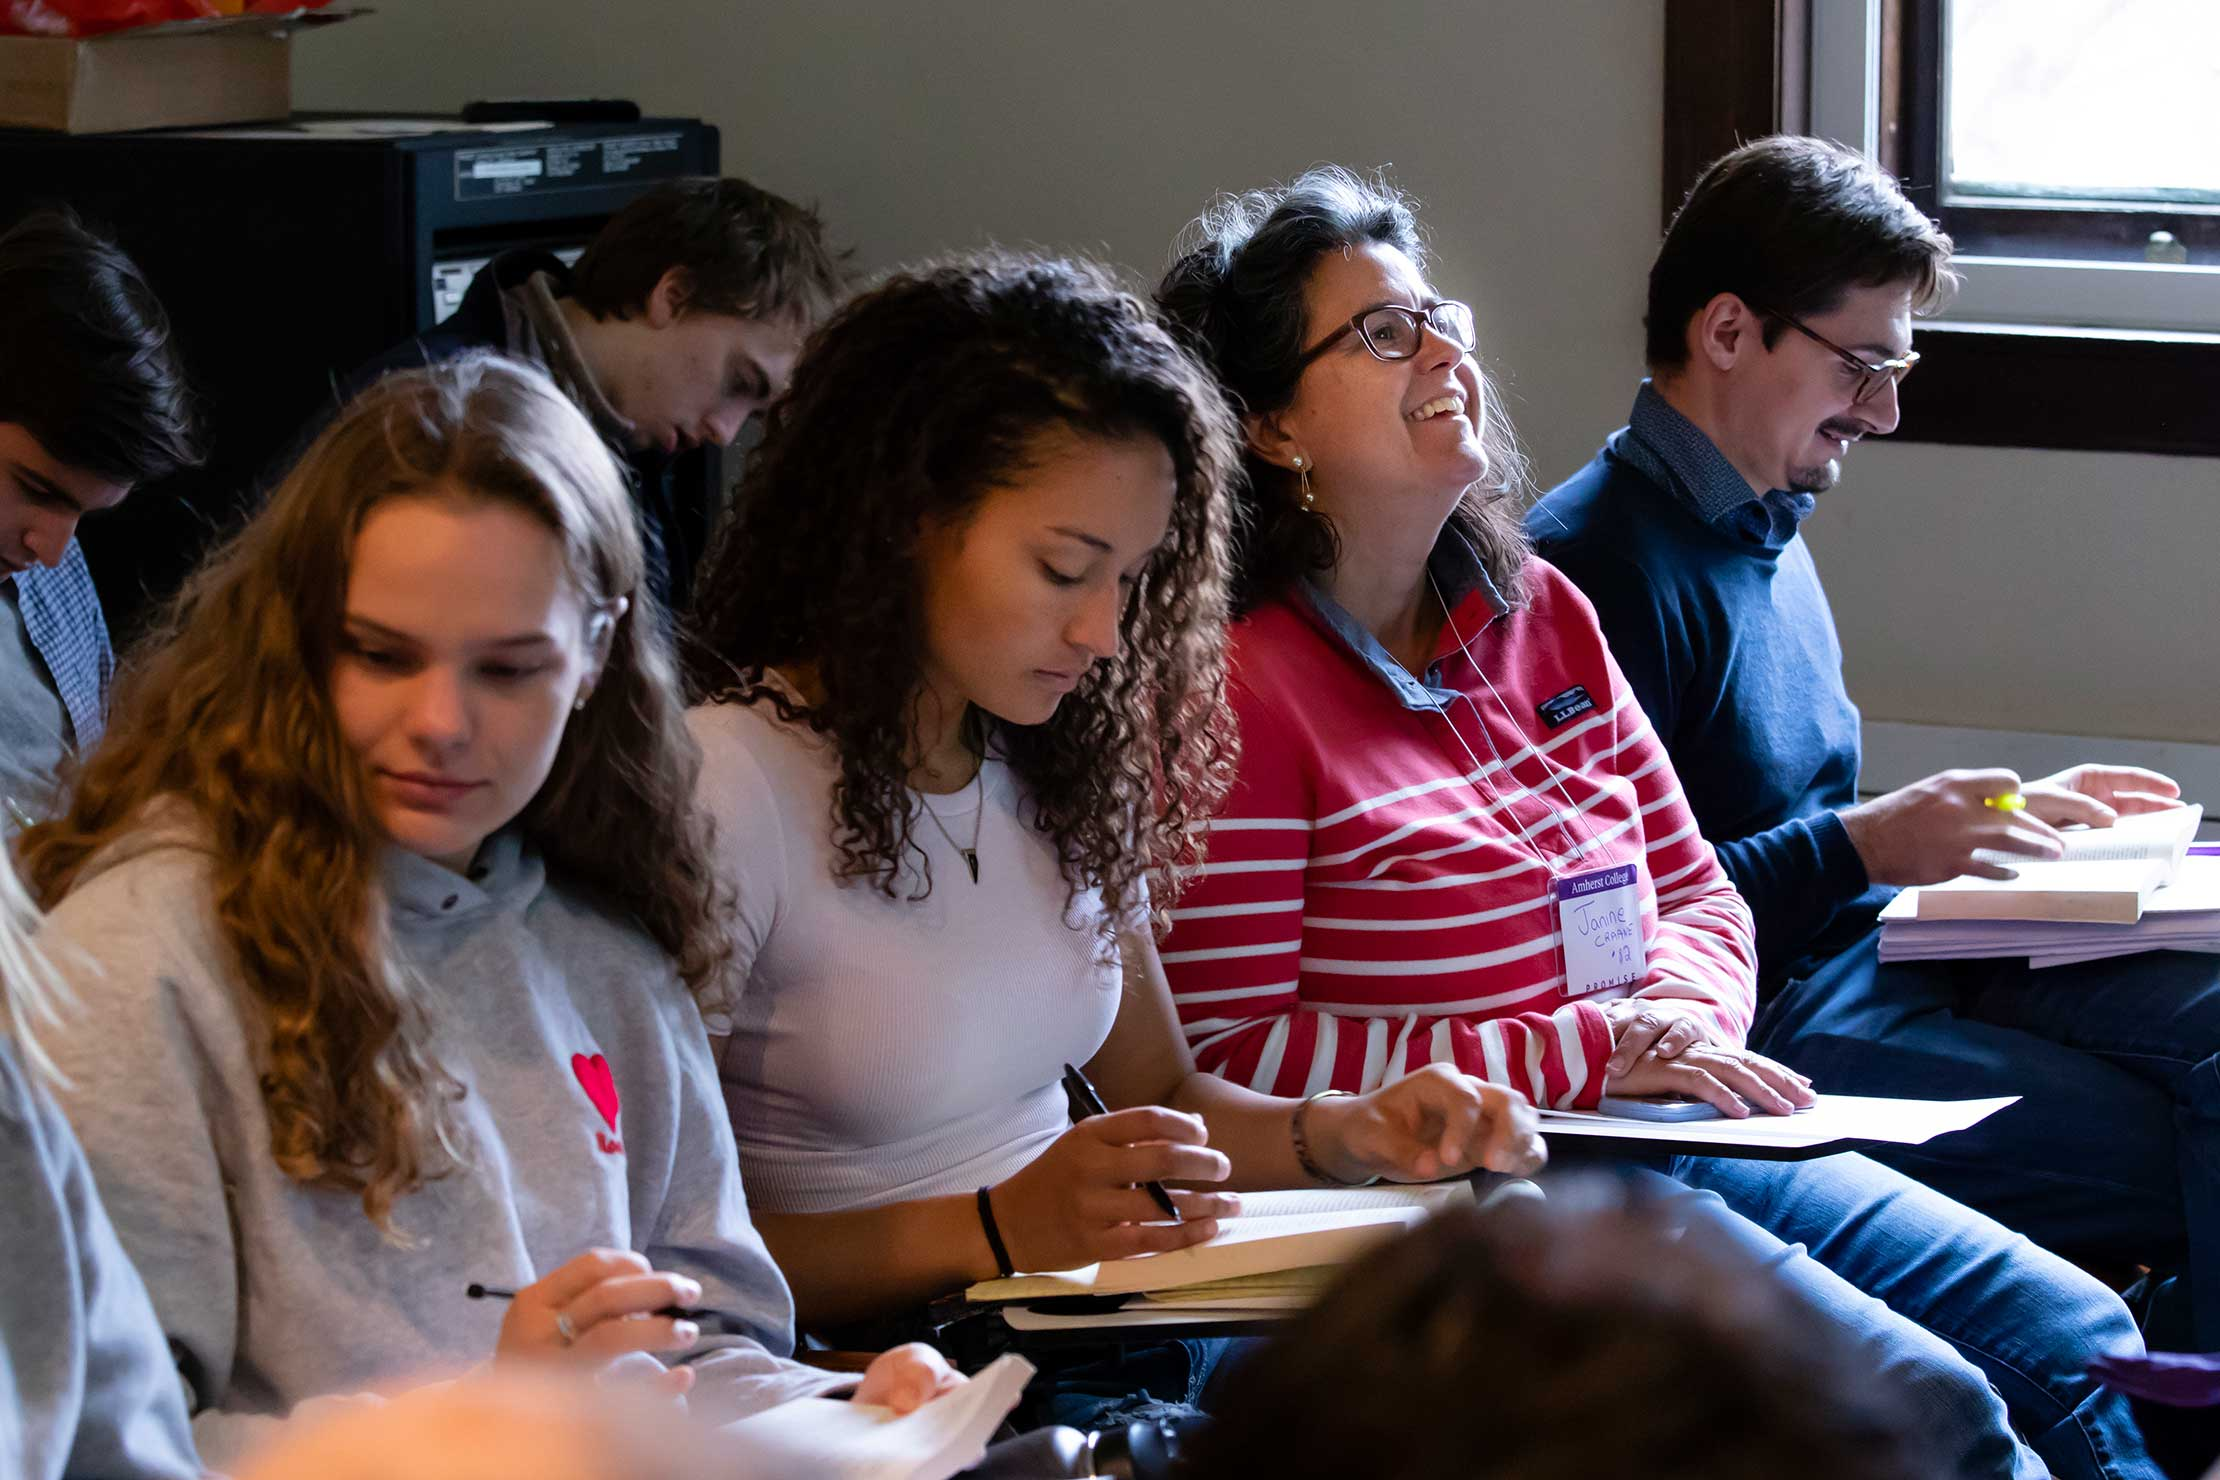 A Homecoming attendee sits among the students in Professor Katsaros' class, taught in Fayerweather.